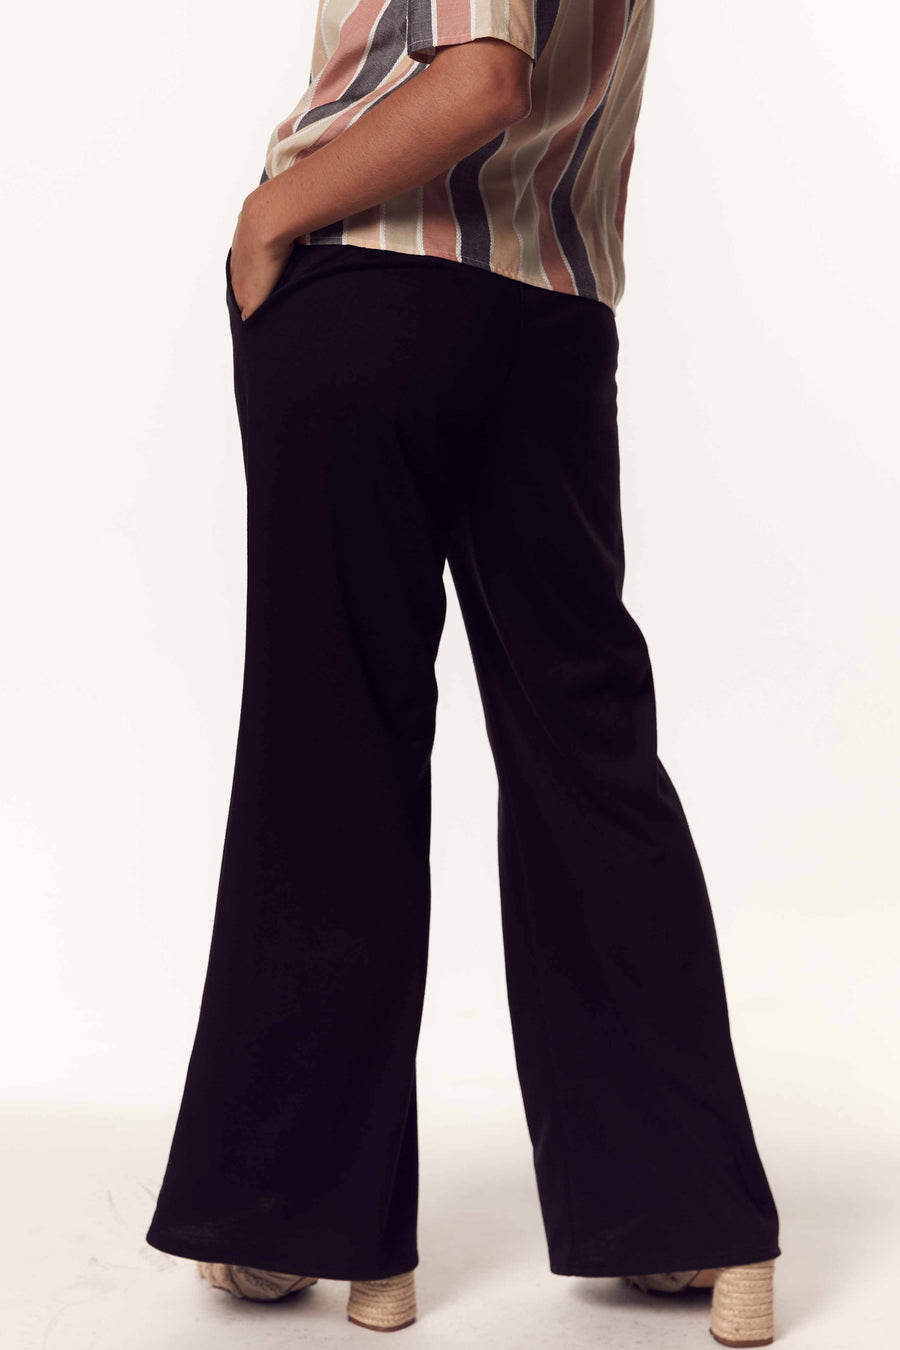 Angel Eyes Pant